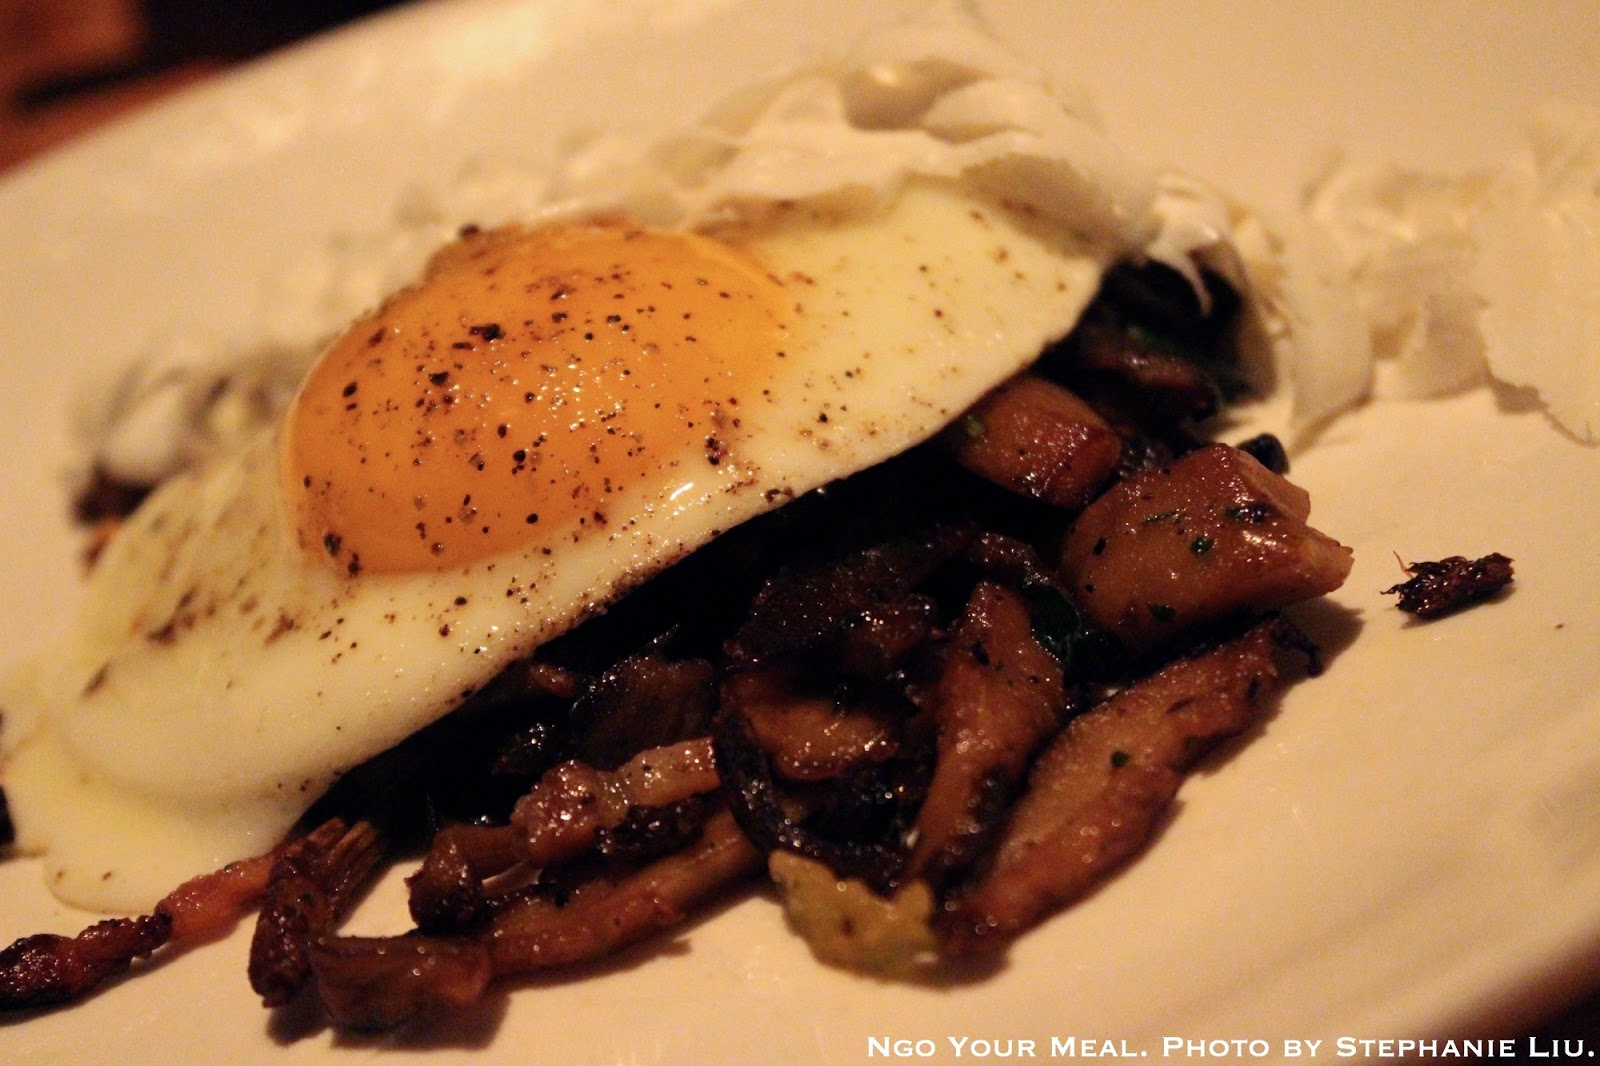 roasted mushrooms with pancetta and ricotta salata with a fried egg on top